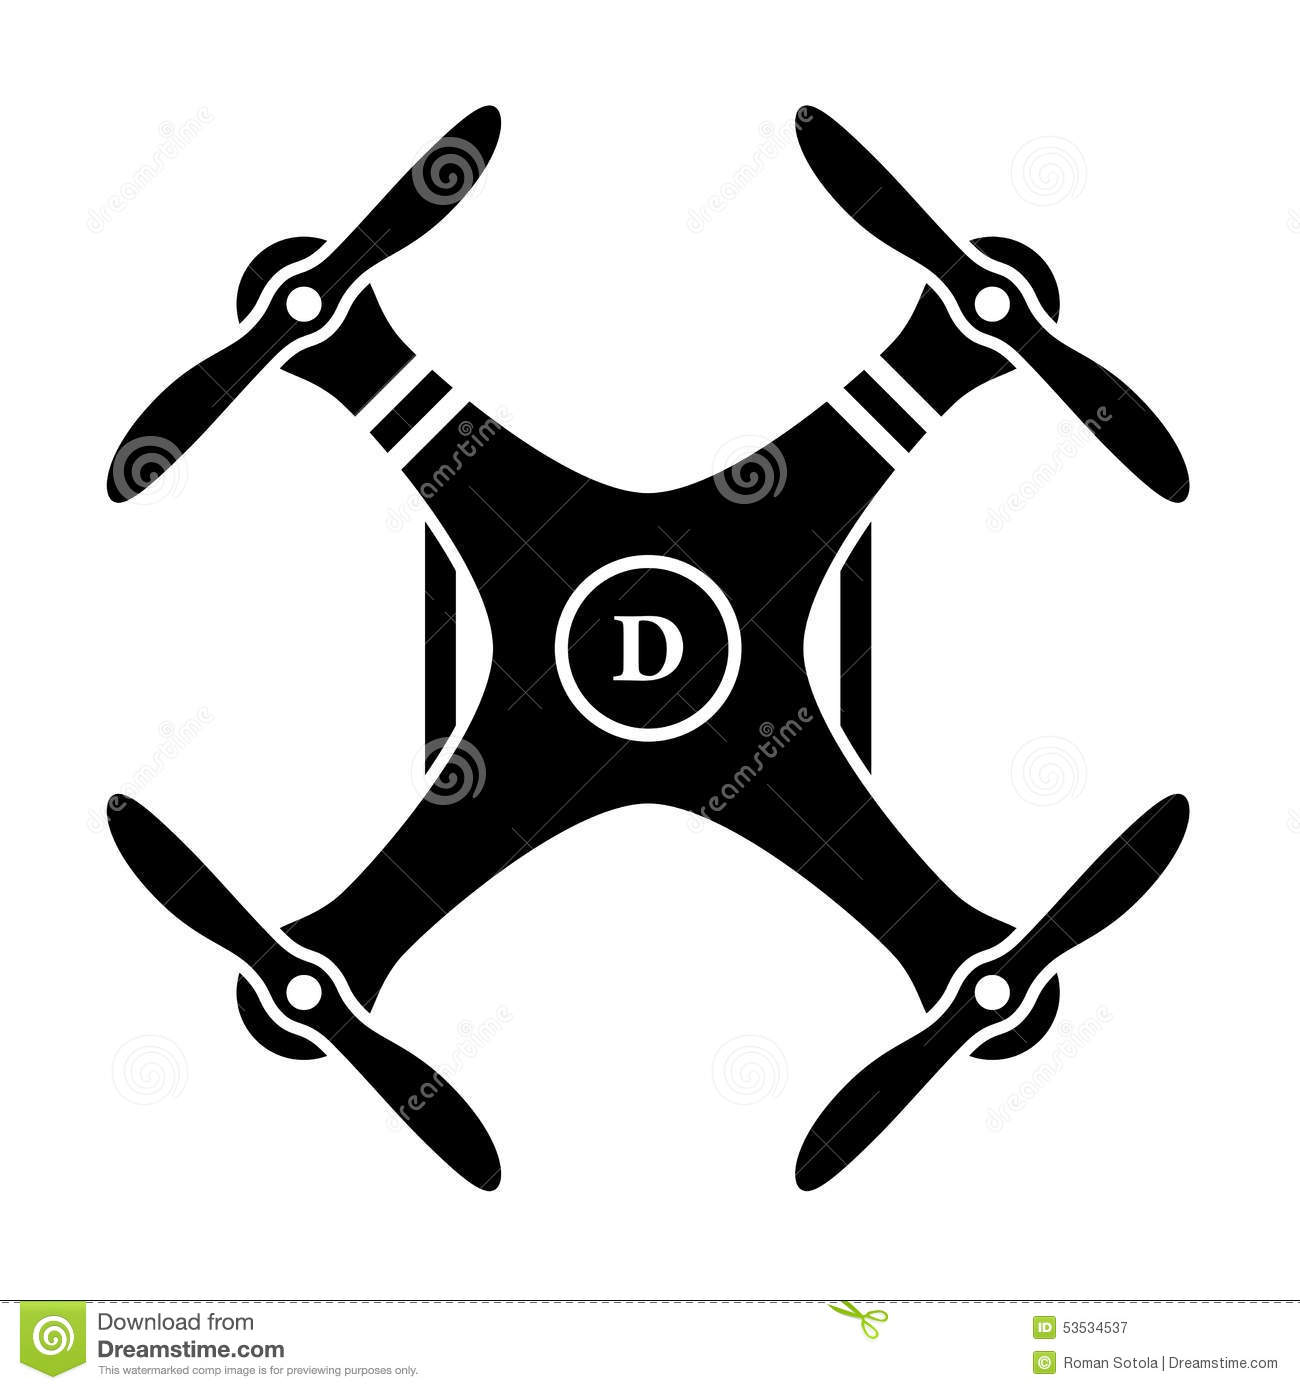 Phantom plane clipart picture download Dji phantom clipart - ClipartFest picture download